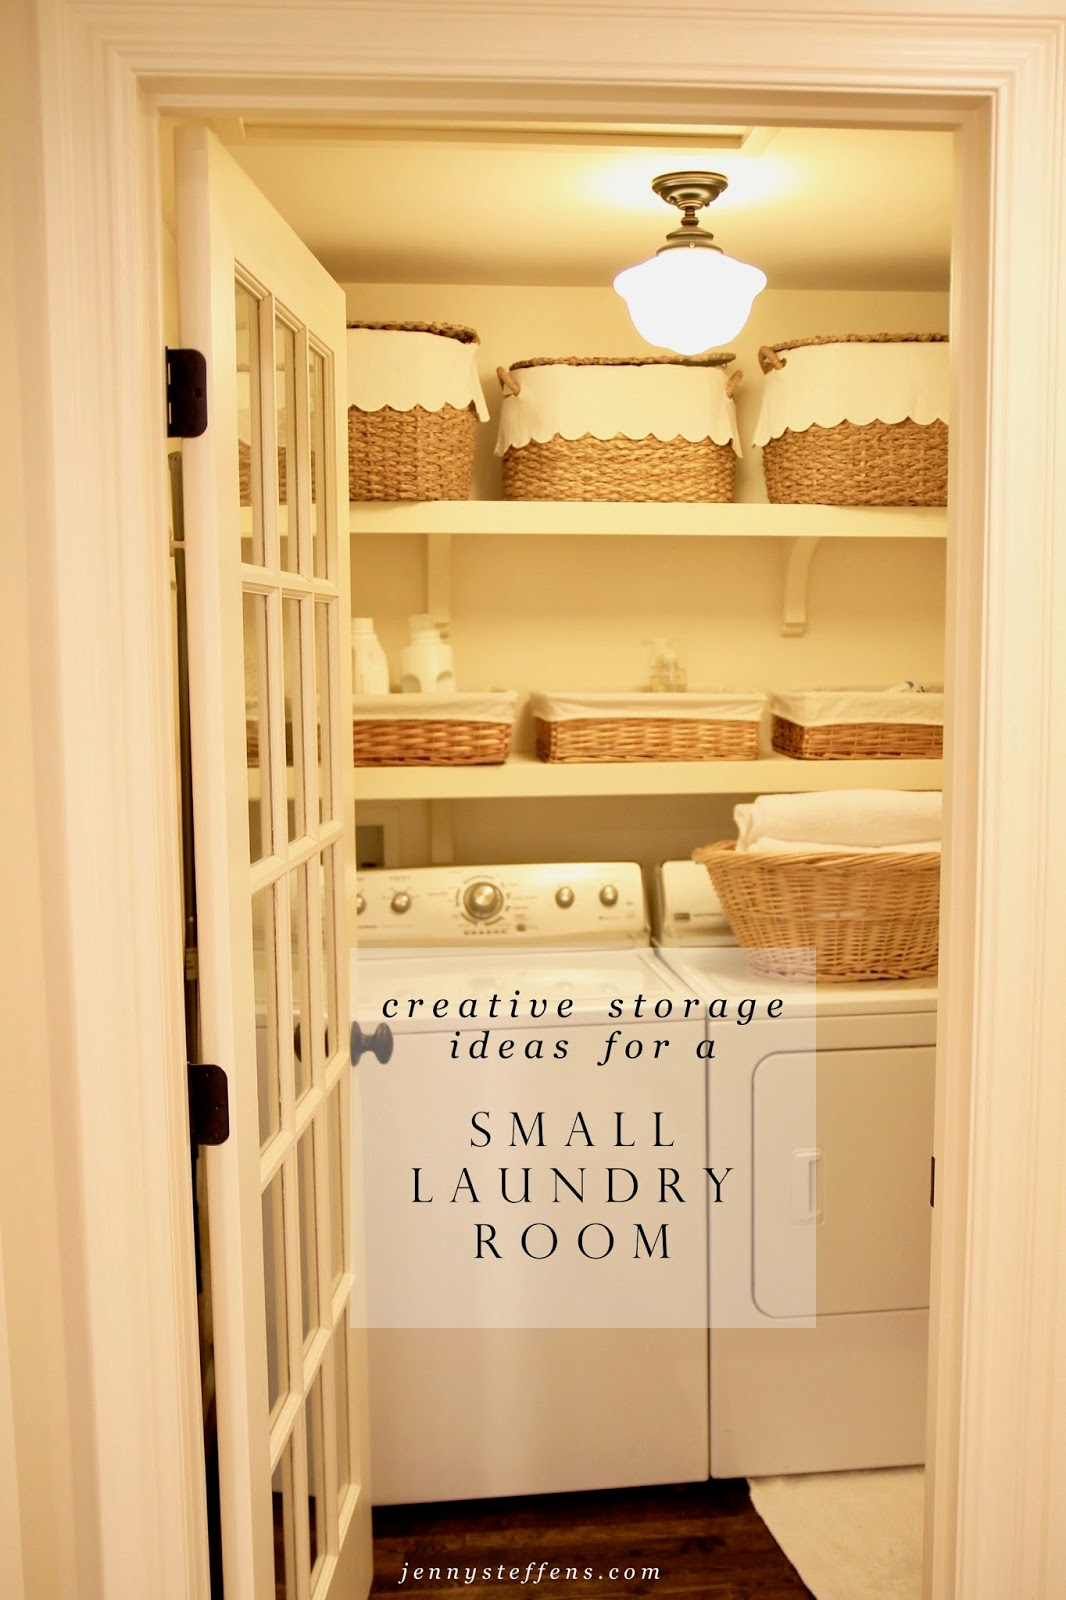 Jenny Steffens Hobick Our Little Laundry Room Creative